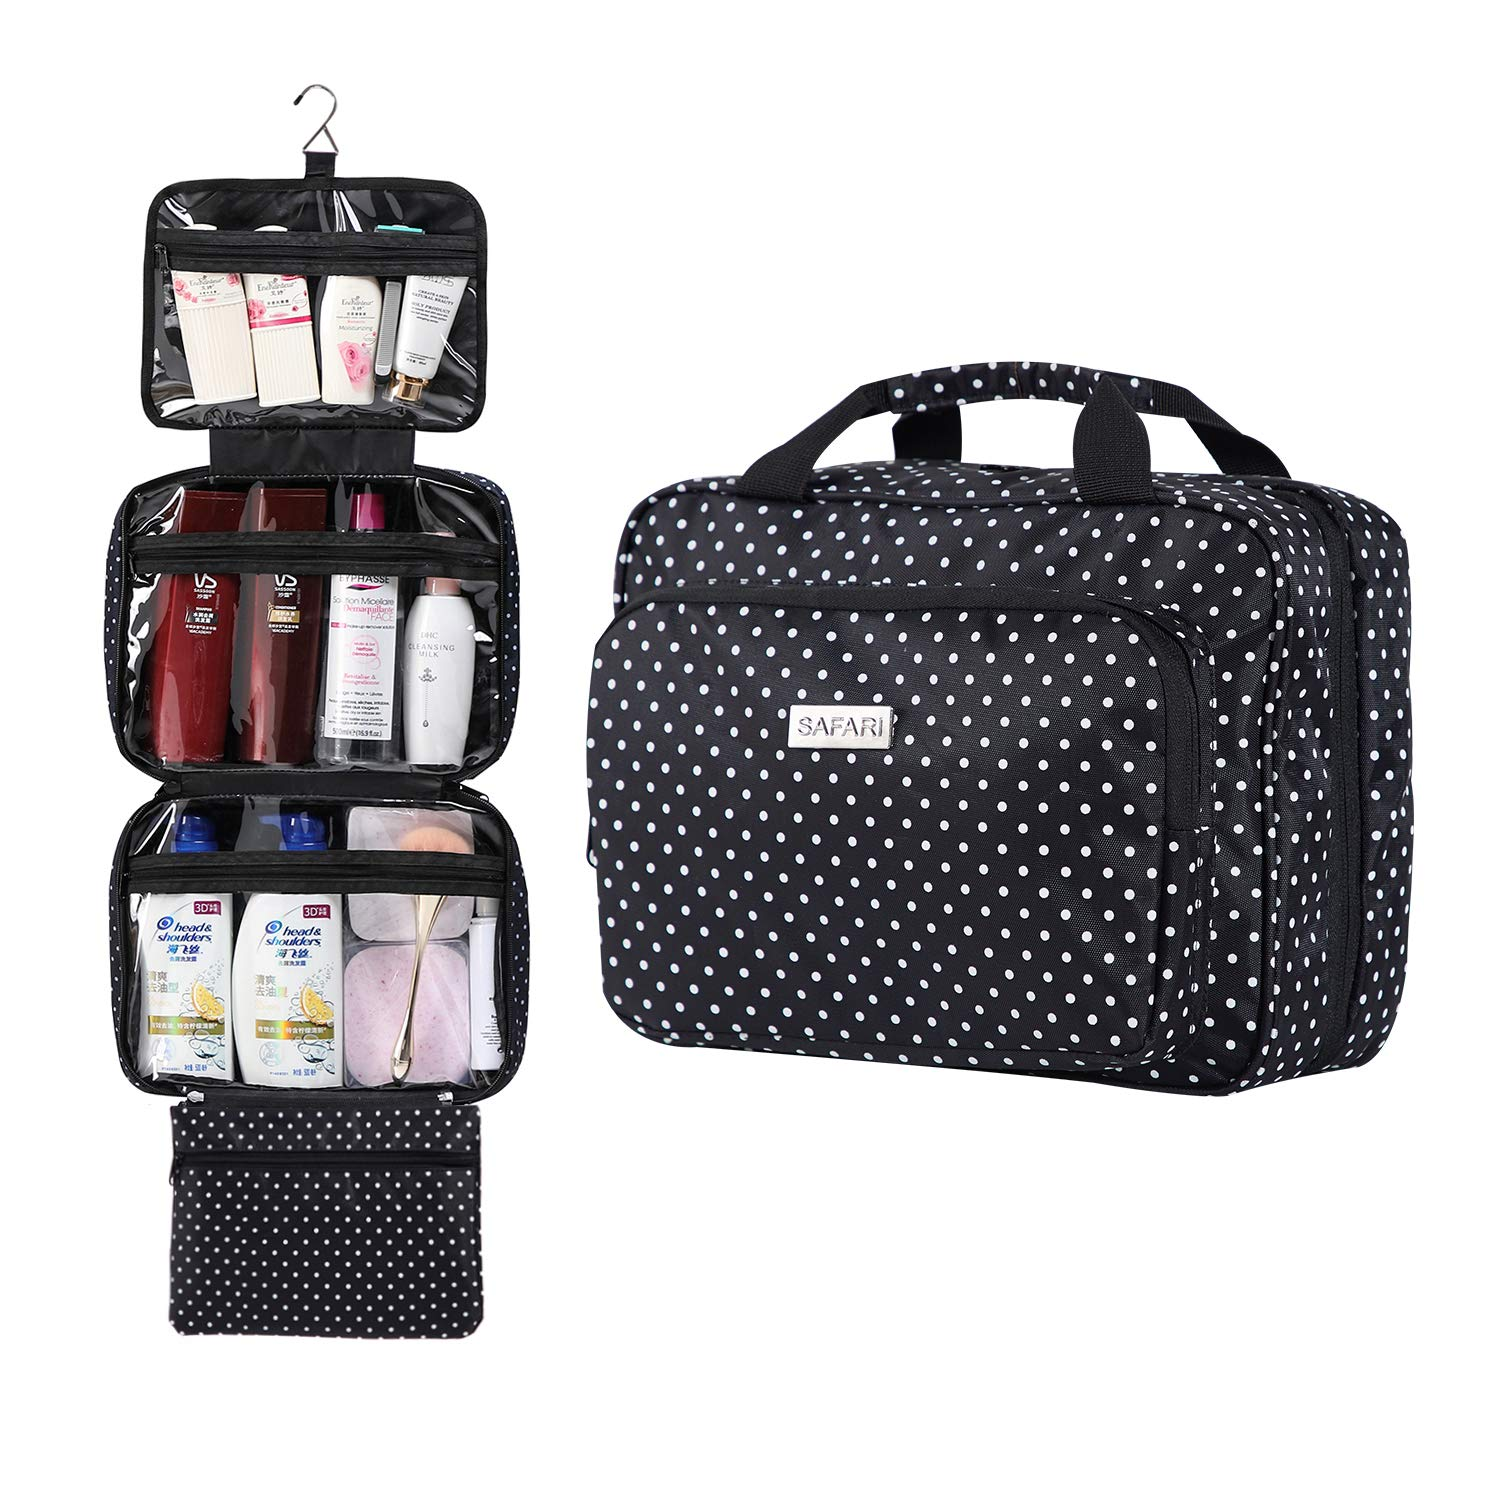 Large Hanging Travel Toiletry Cosmetic Bag for Women by SAFARI Polka Dot – Waterproof and Durable Fabric with Clear Compartments and Detachable Pouch – The Perfect Gift